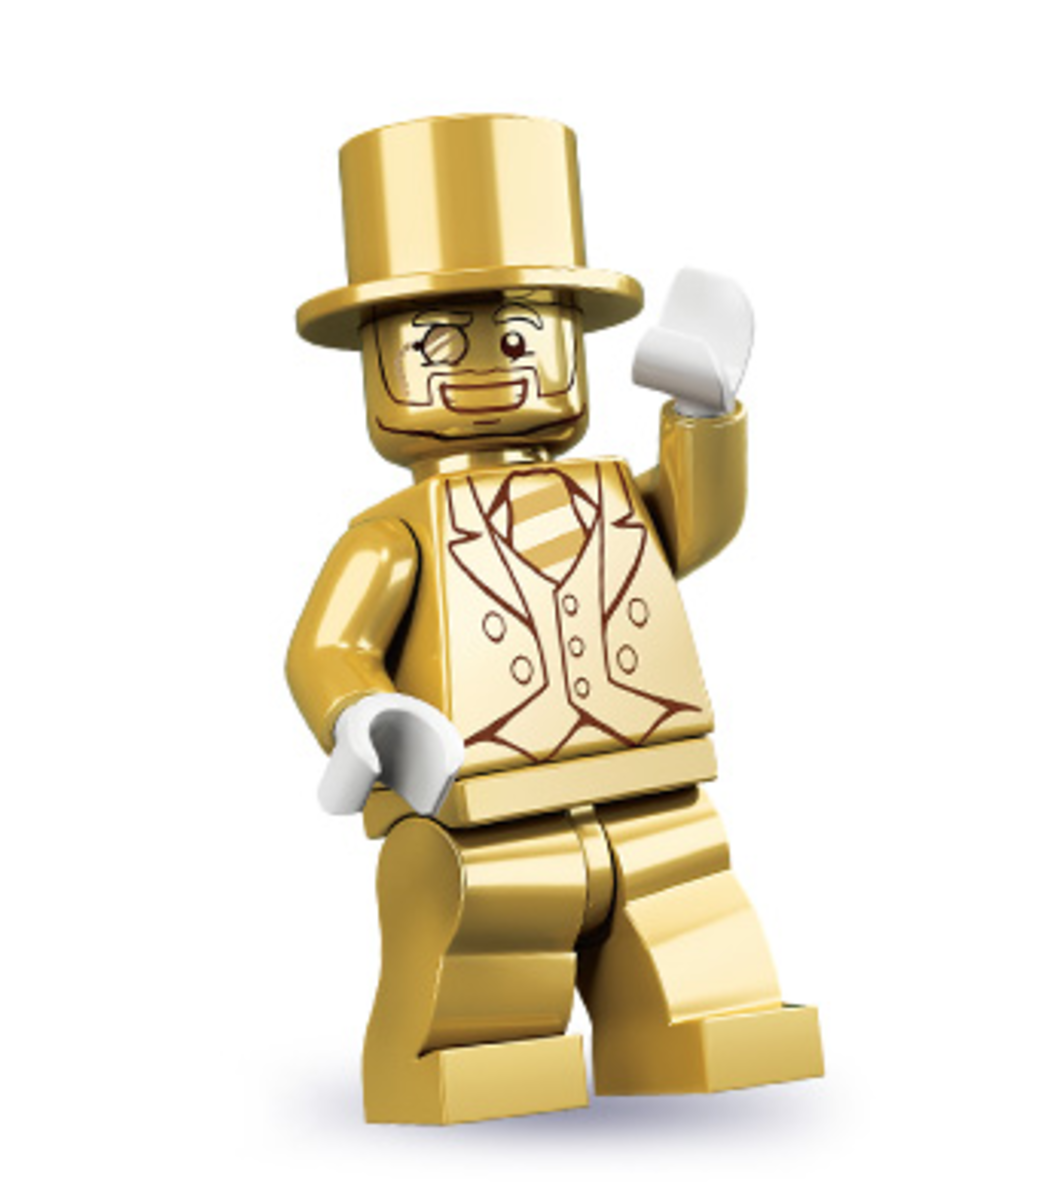 How To Find A Golden Mr Gold Lego Minifigure From Series 10